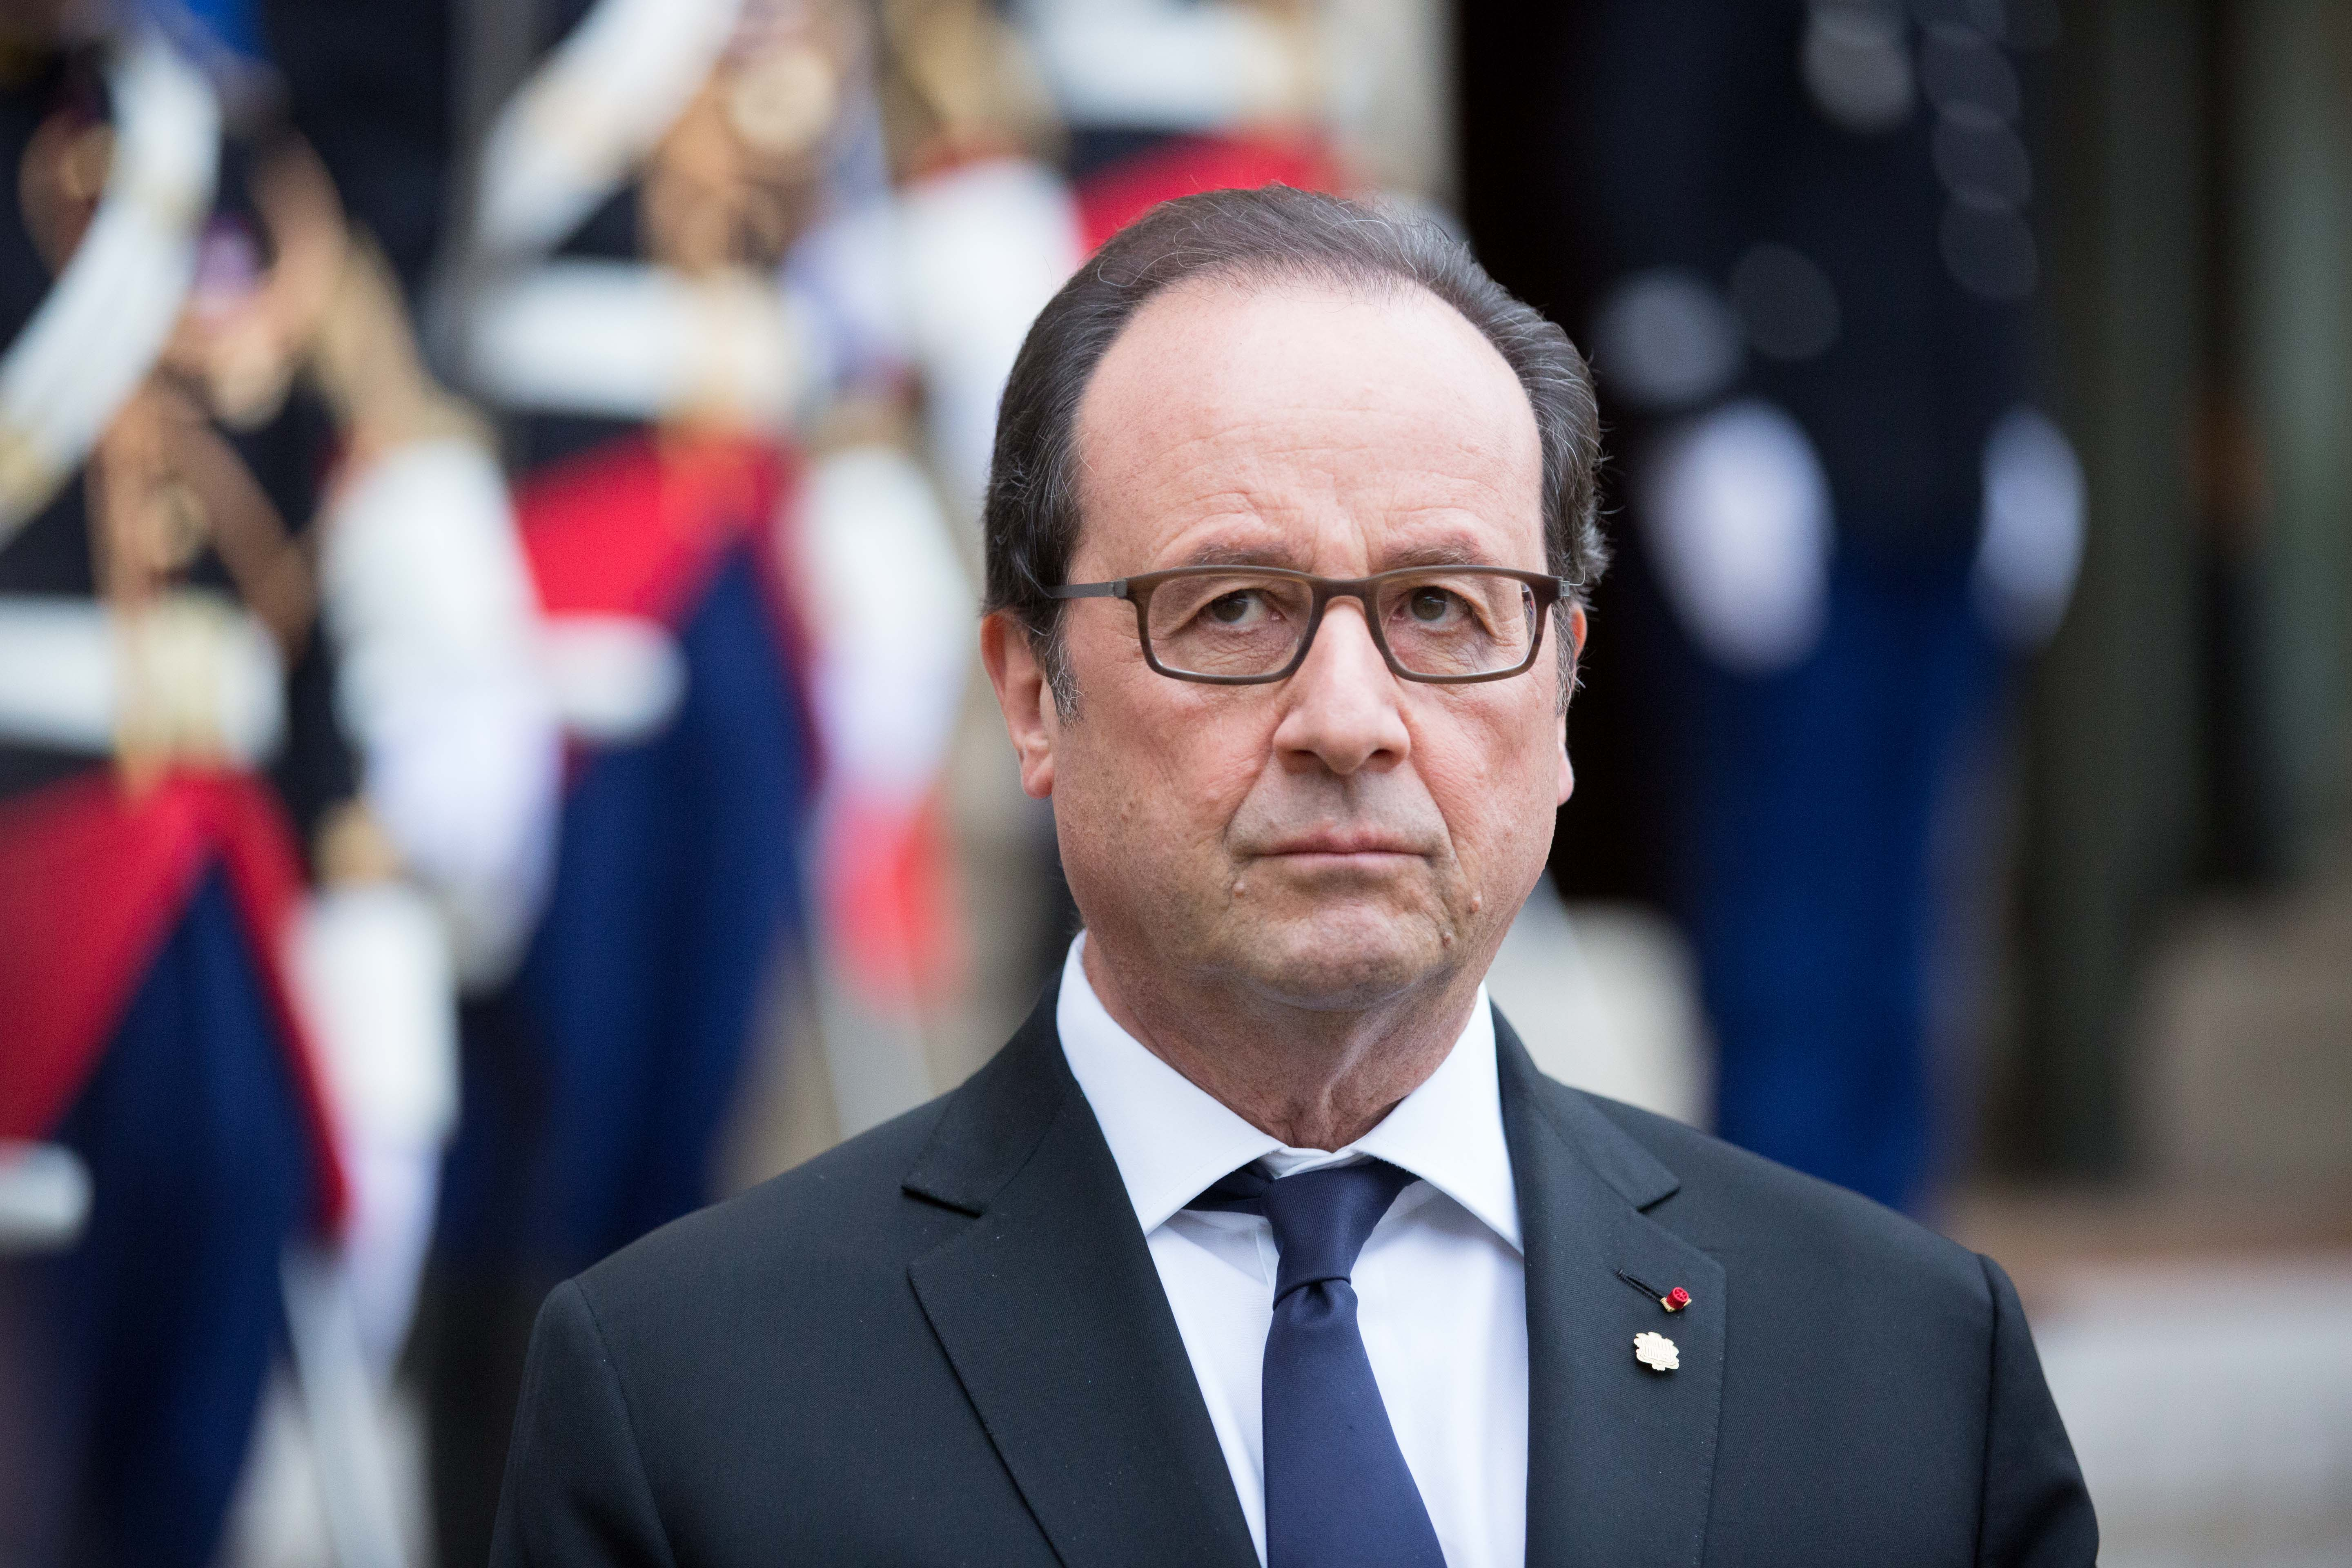 French President Francois Hollande receives the Head of Andorra Principality Government, Antoni Marti Petit and President of Parliament of the Principality of Andorra, Vicenc Mateu Zamora for a meeting and a statement to the media at the Elysee Palace on October 25, 2016 in Paris, France.